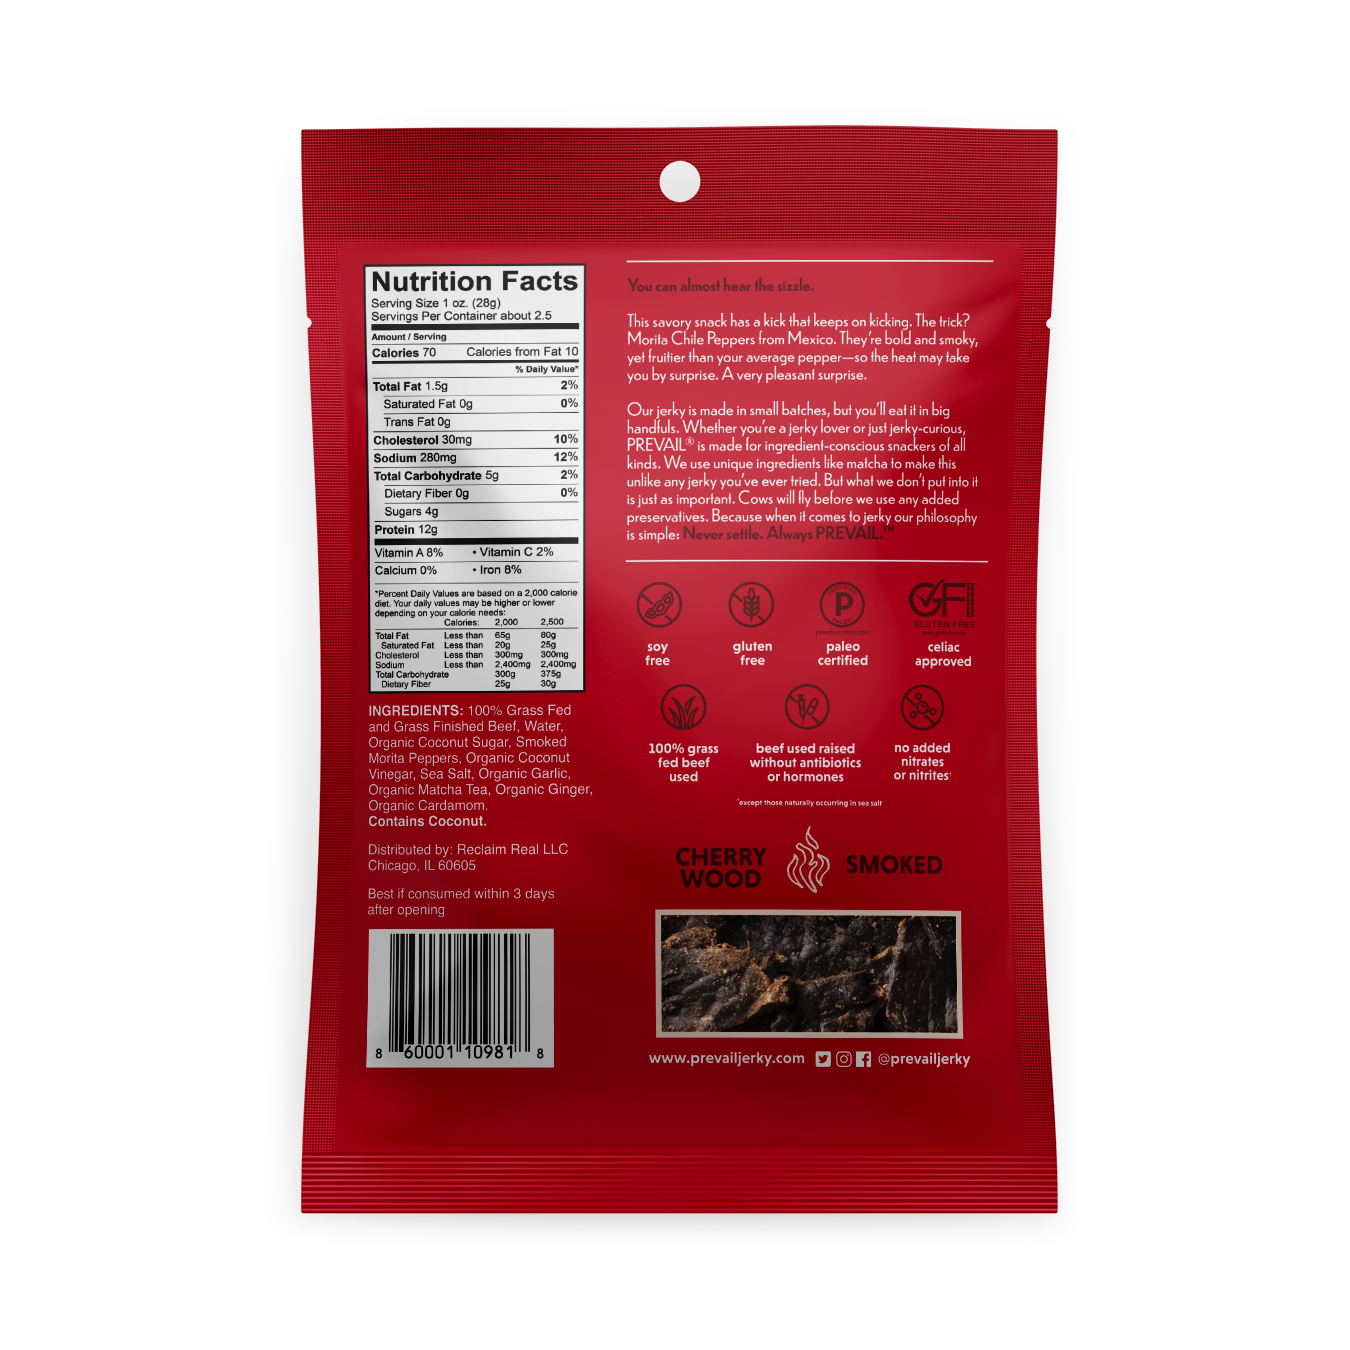 Spicy Beef Jerky back panel - Prevail Jerky - Certified Paleo, KETO Certified by the Paleo Foundation